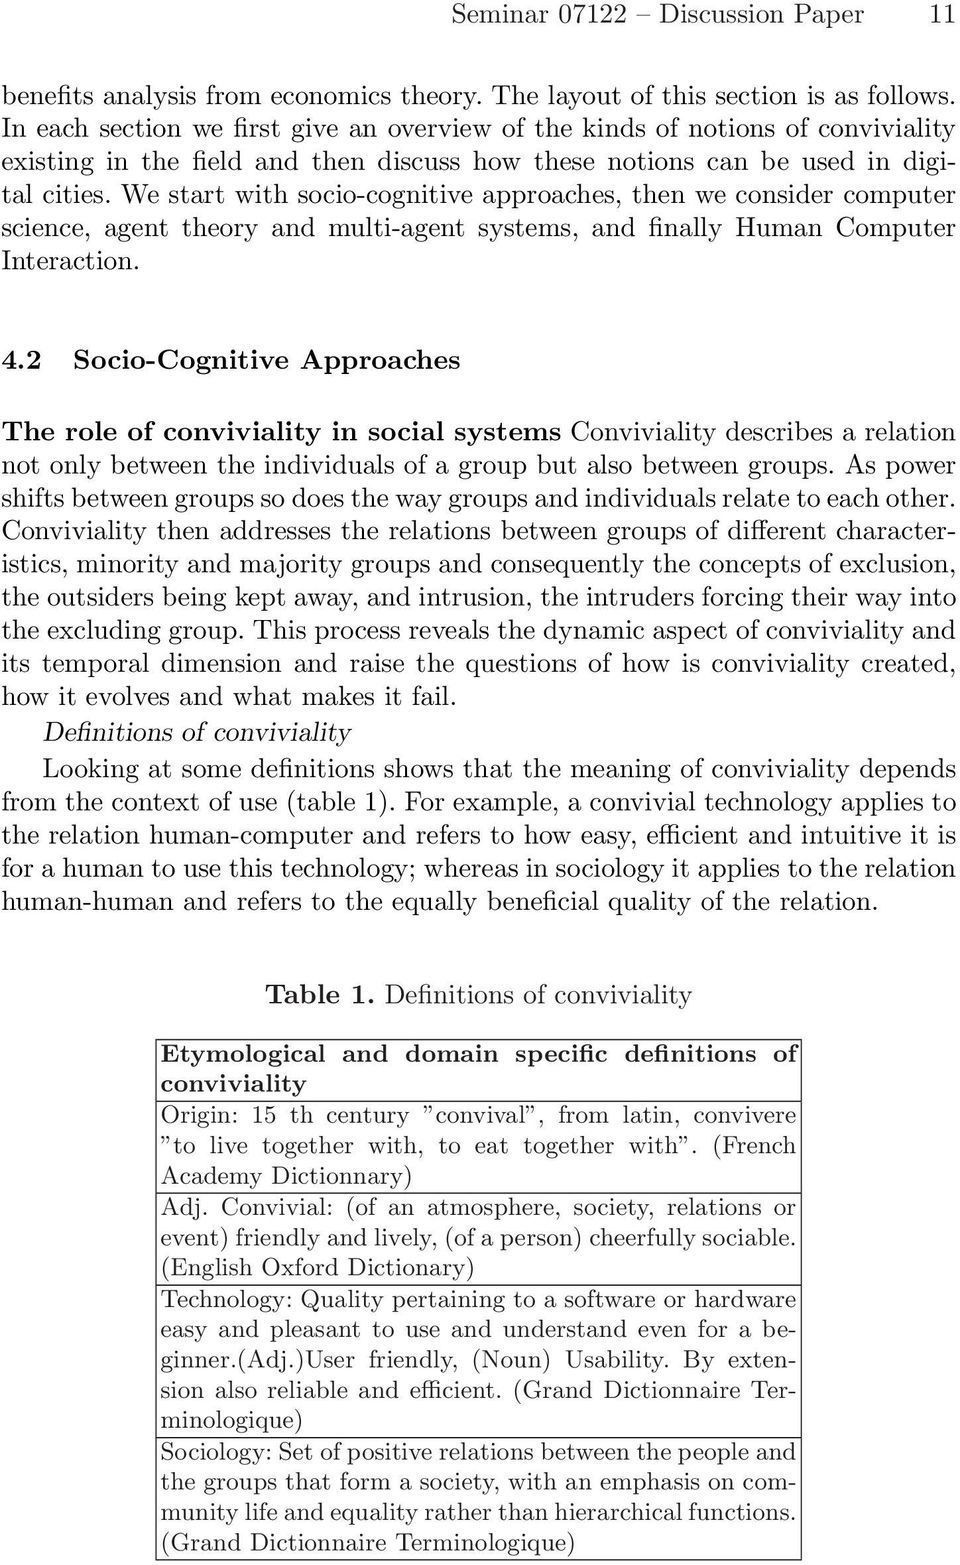 We start with socio-cognitive approaches, then we consider computer science, agent theory and multi-agent systems, and finally Human Computer Interaction. 4.